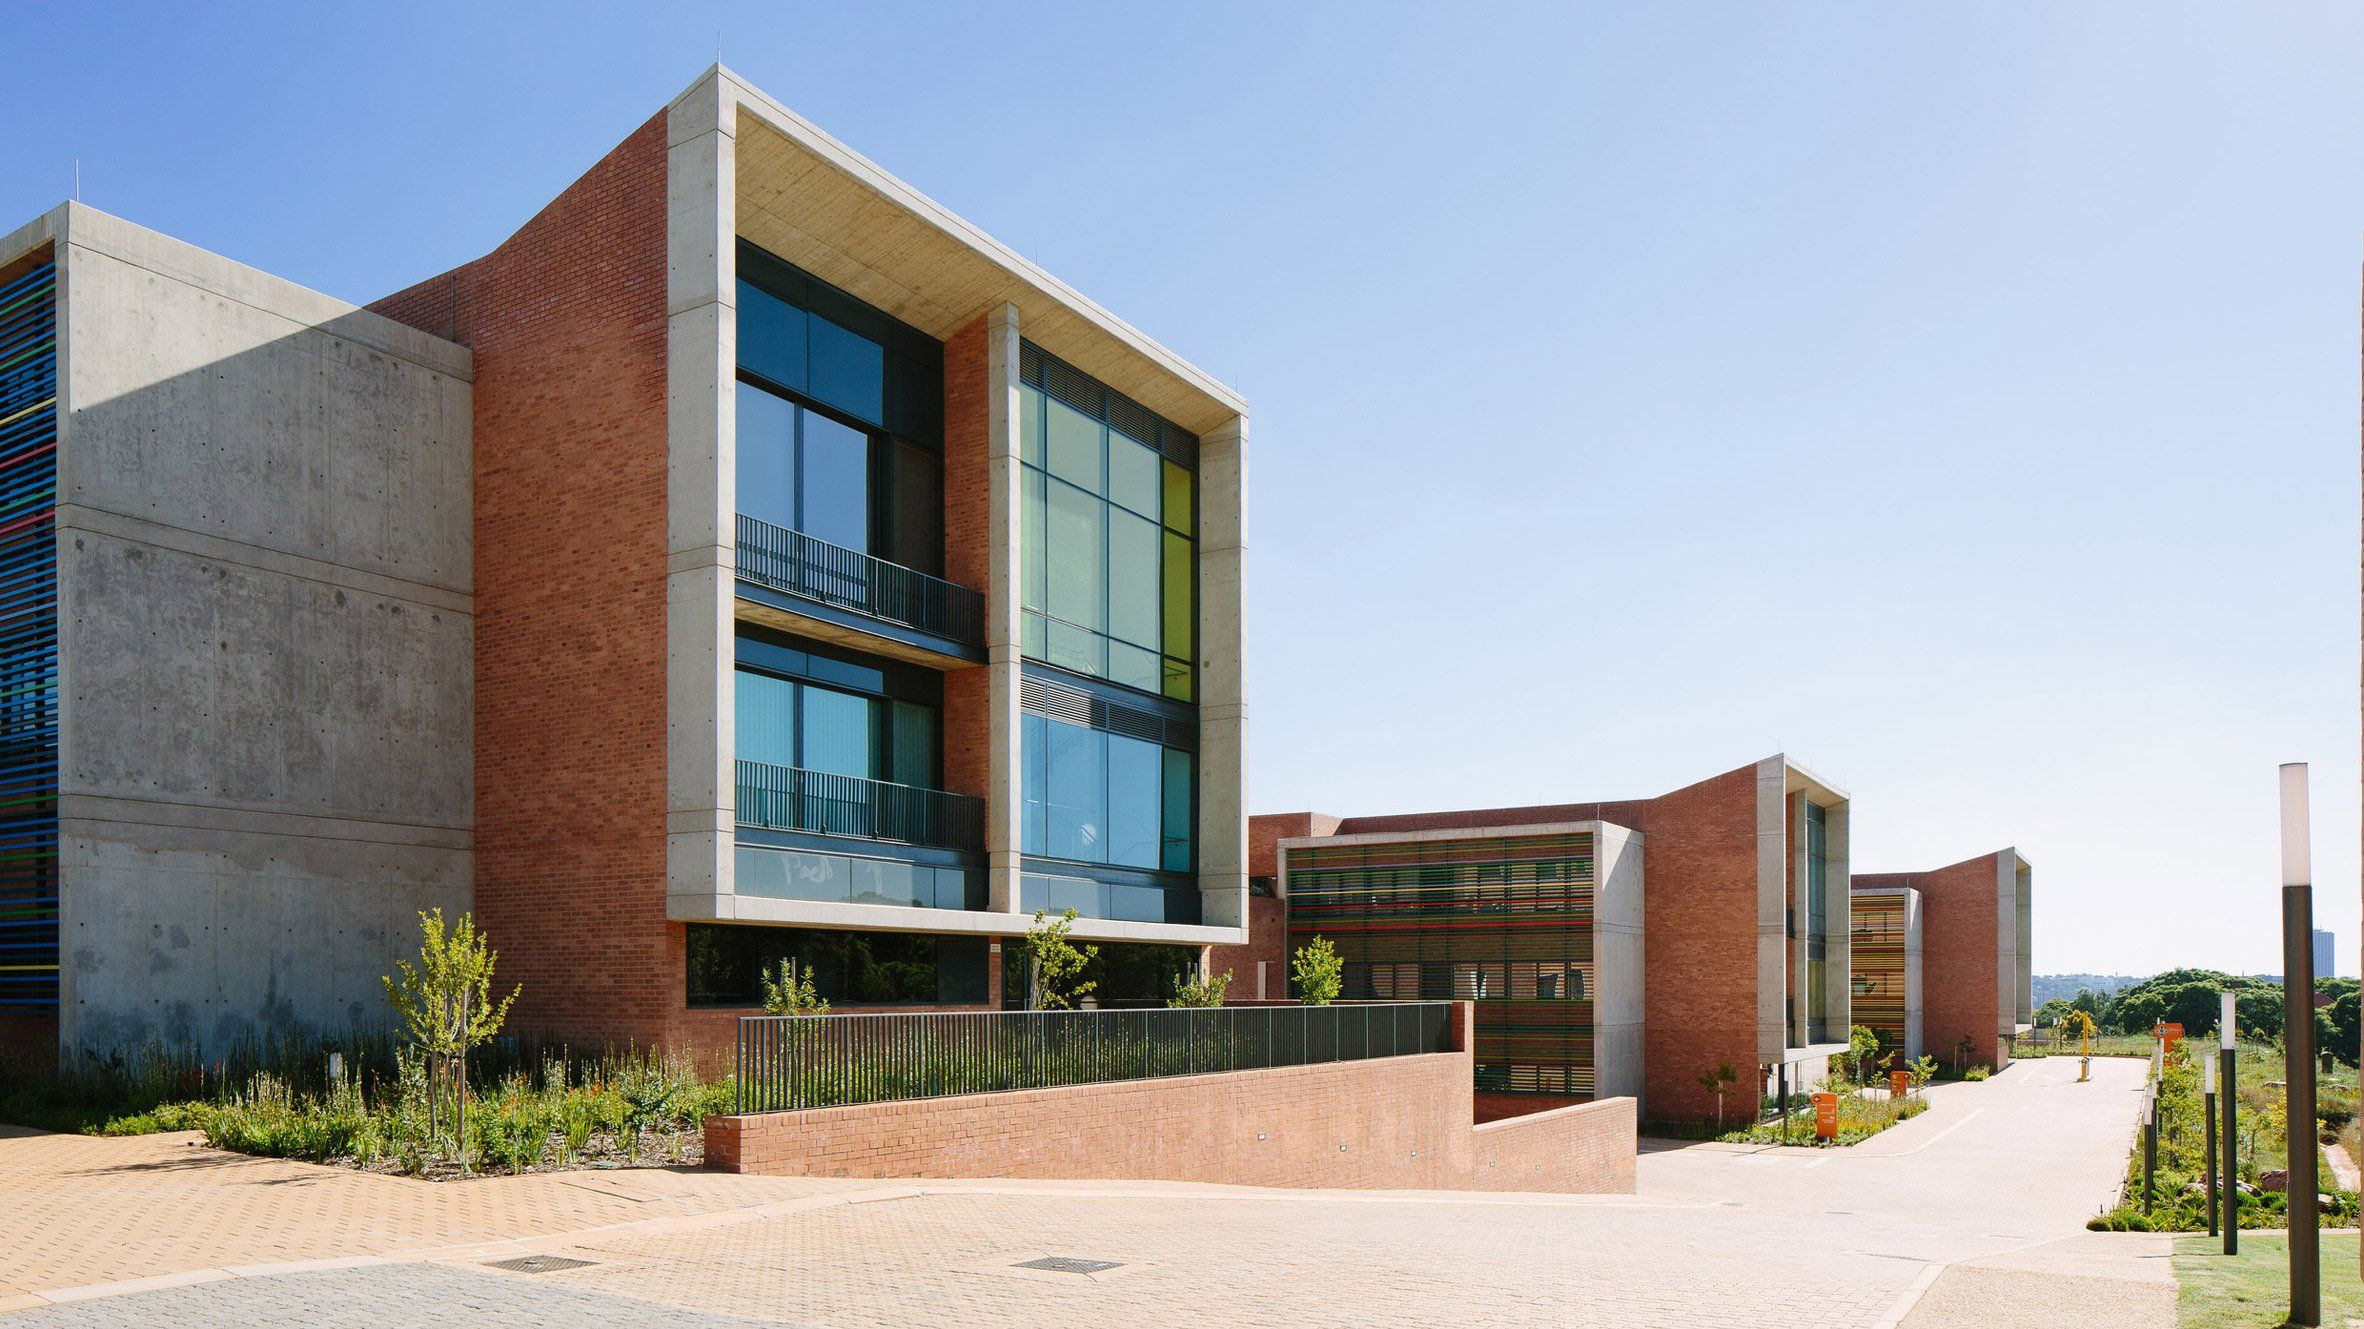 Nelson Mandela Children S Hospital By Sheppard Robson And John Cooper Architecture Arquitectura De Salud Hospitales